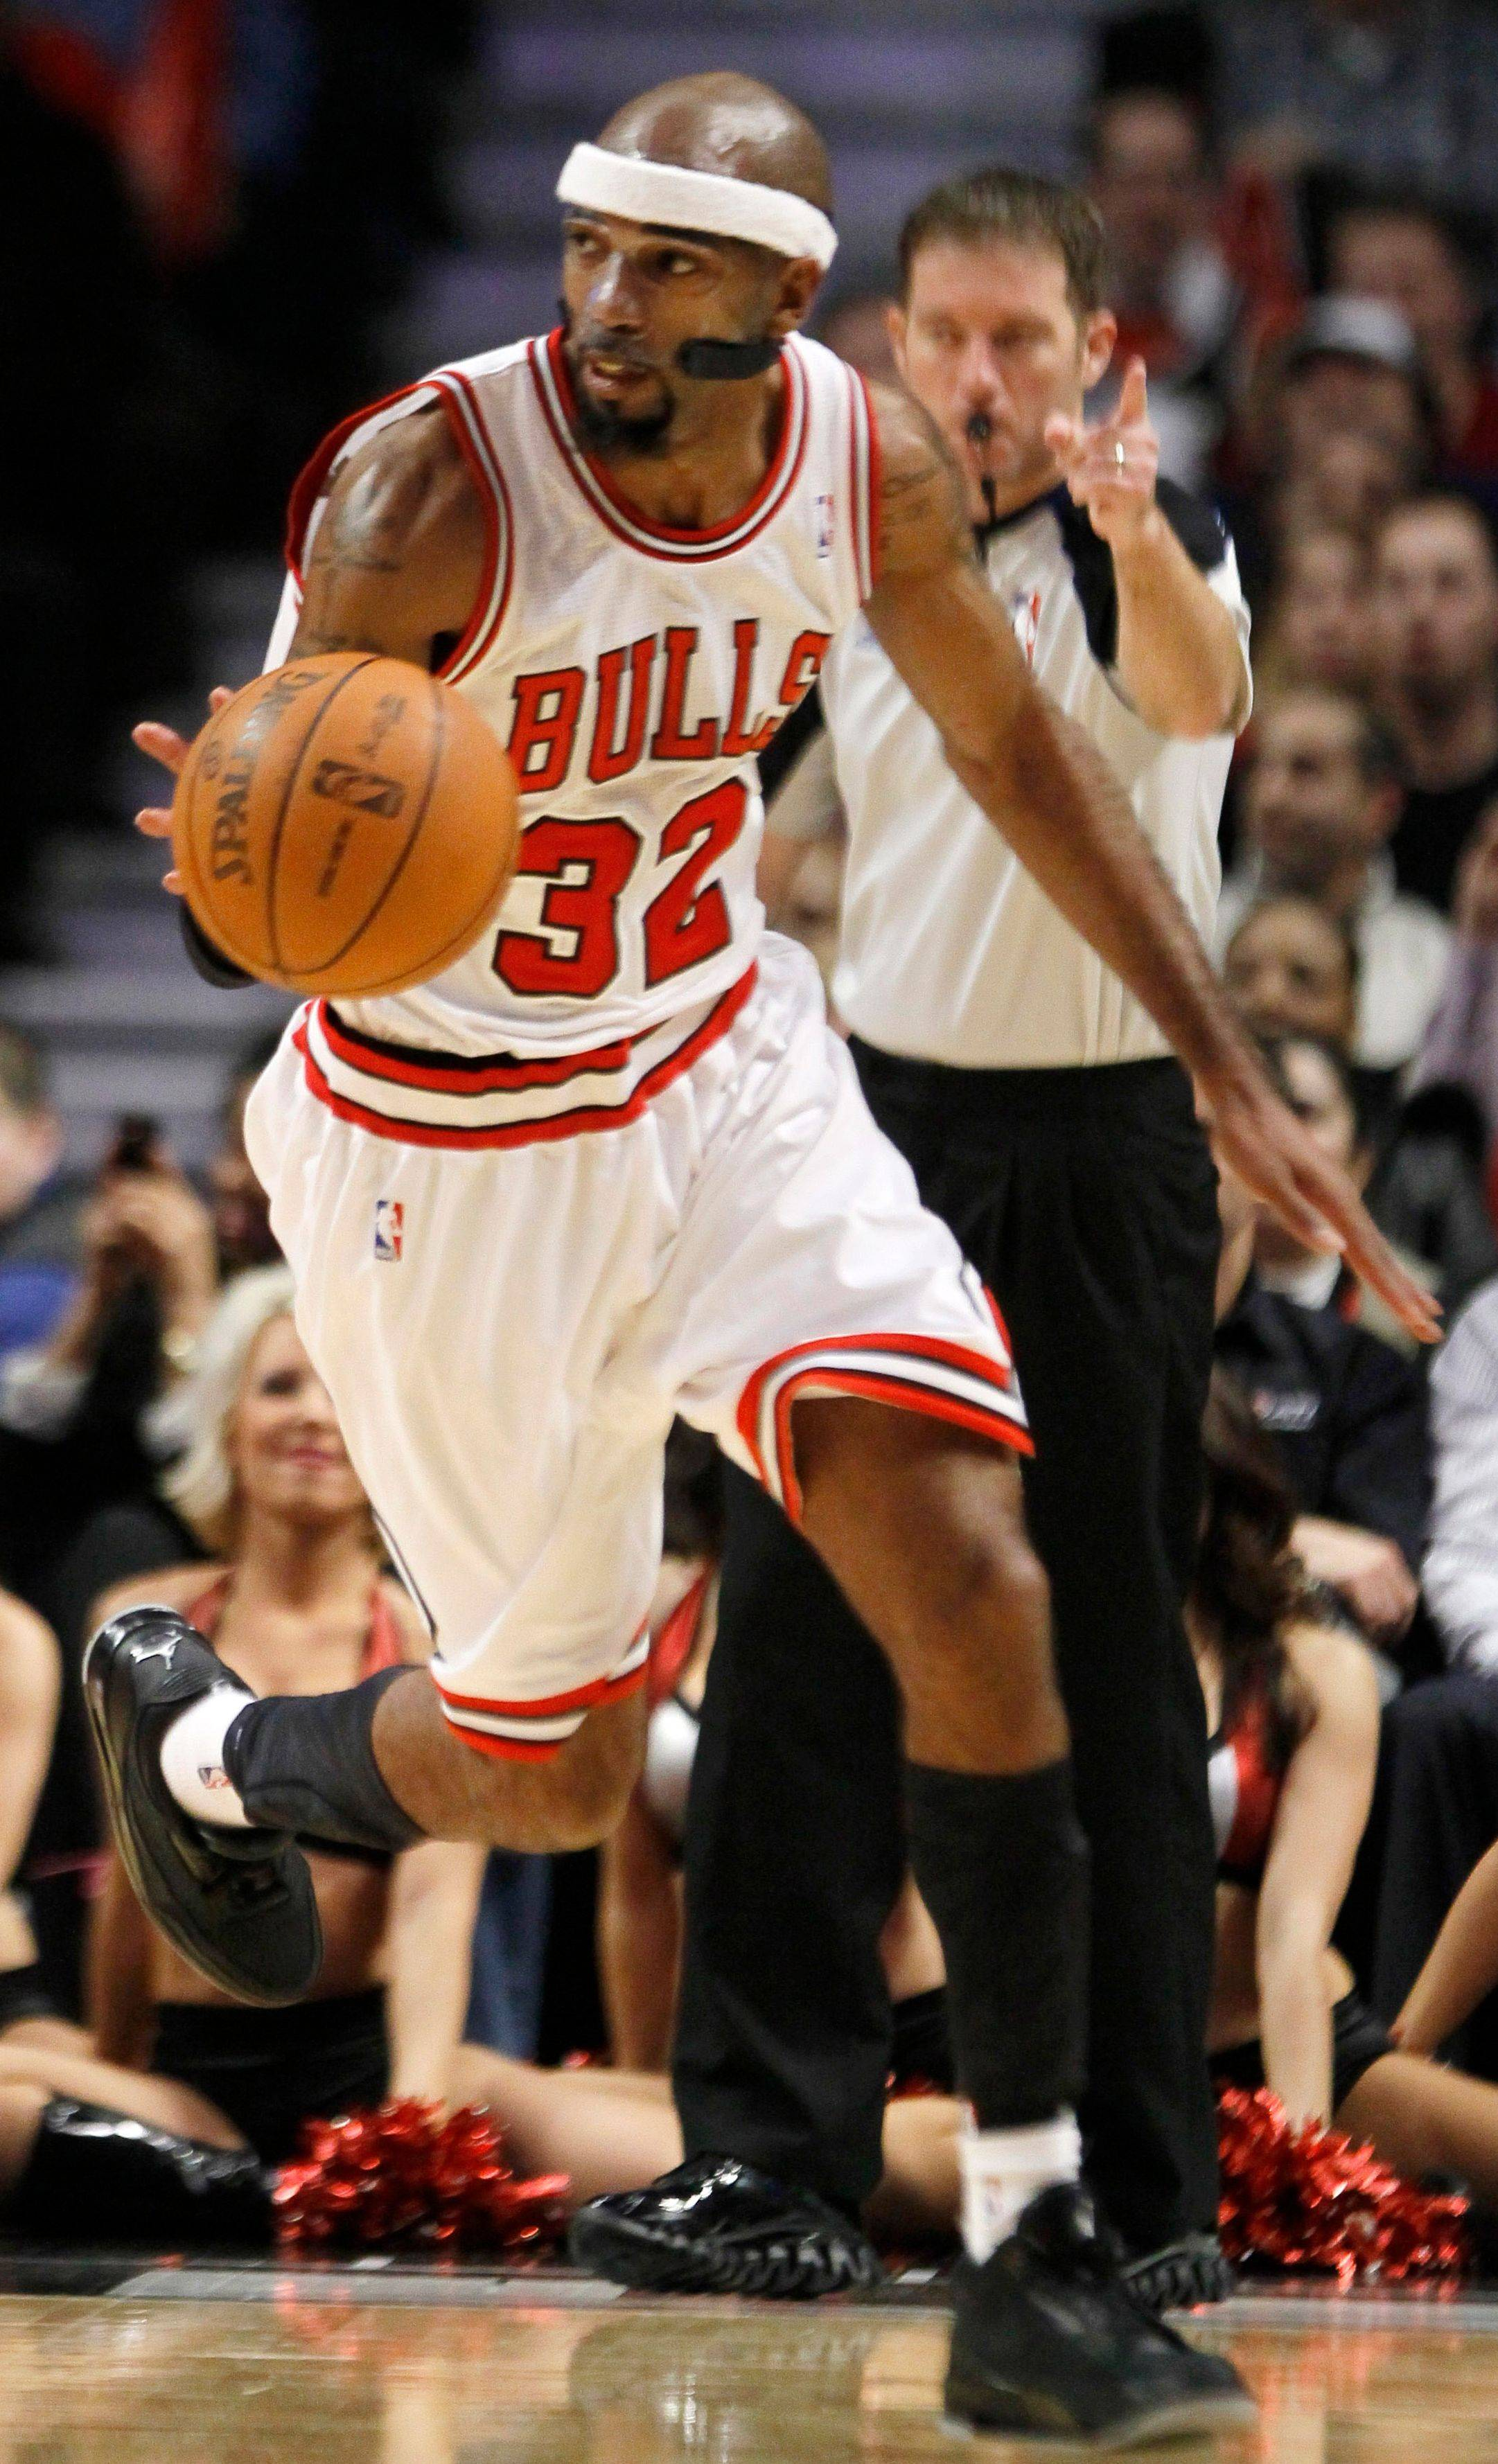 Bulls guard Richard Hamilton is day to day with a shoulder injury.